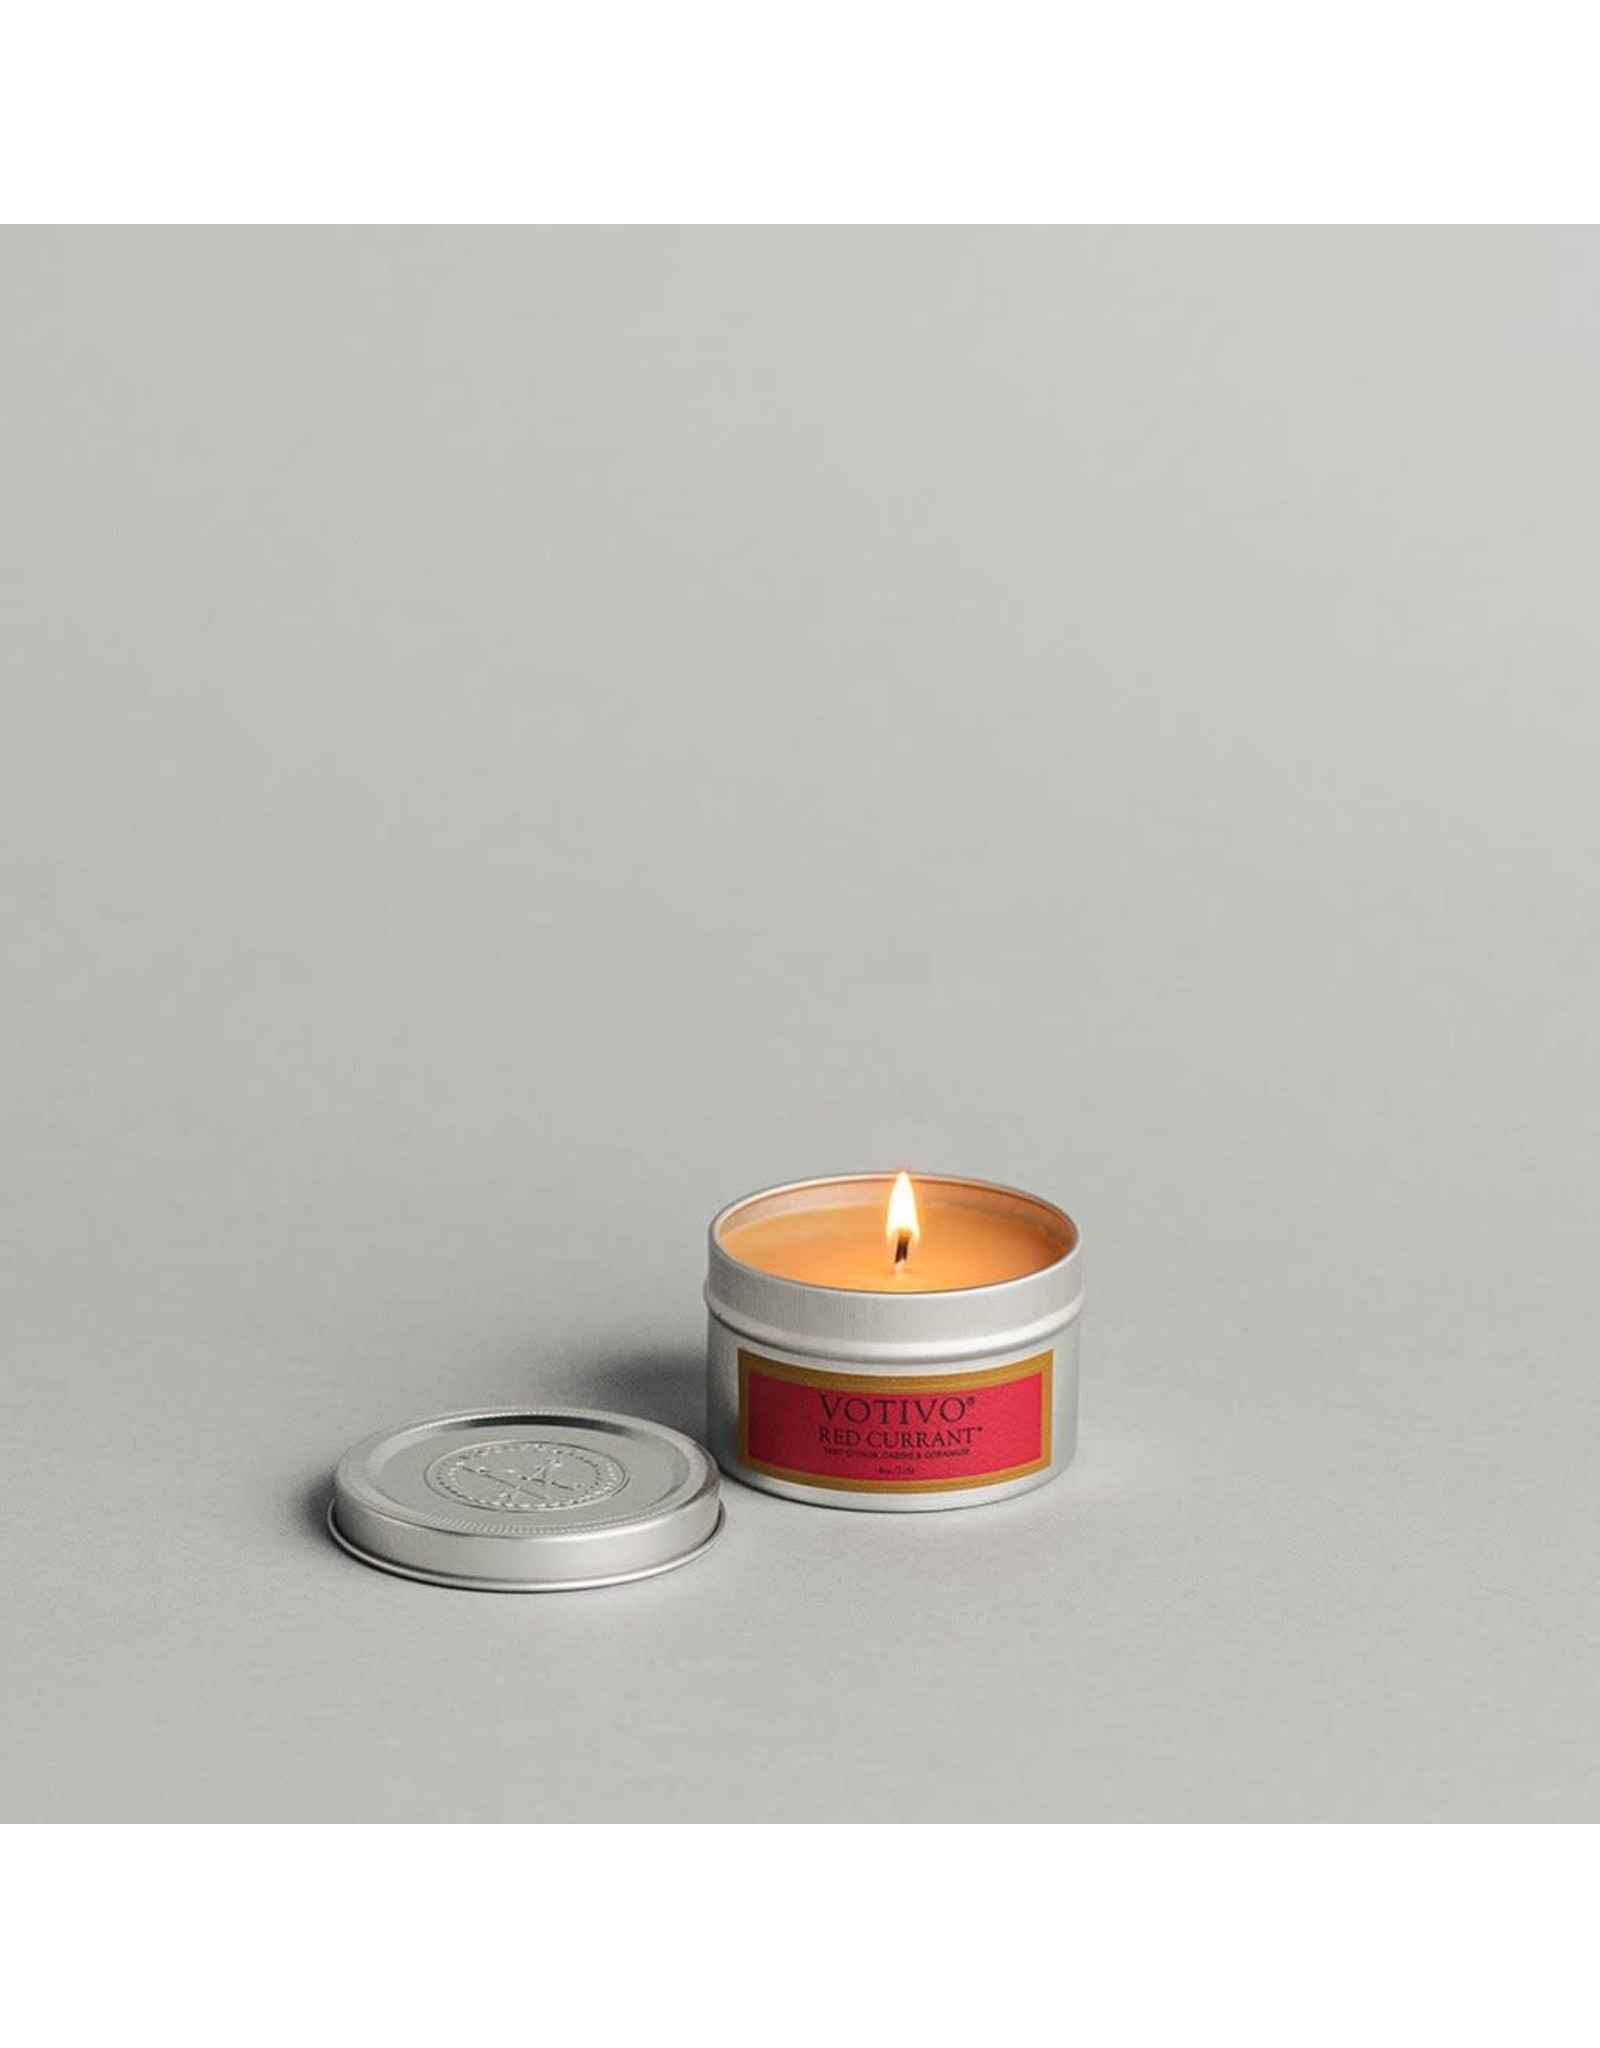 VOT Red Currant 4oz Travel Candle